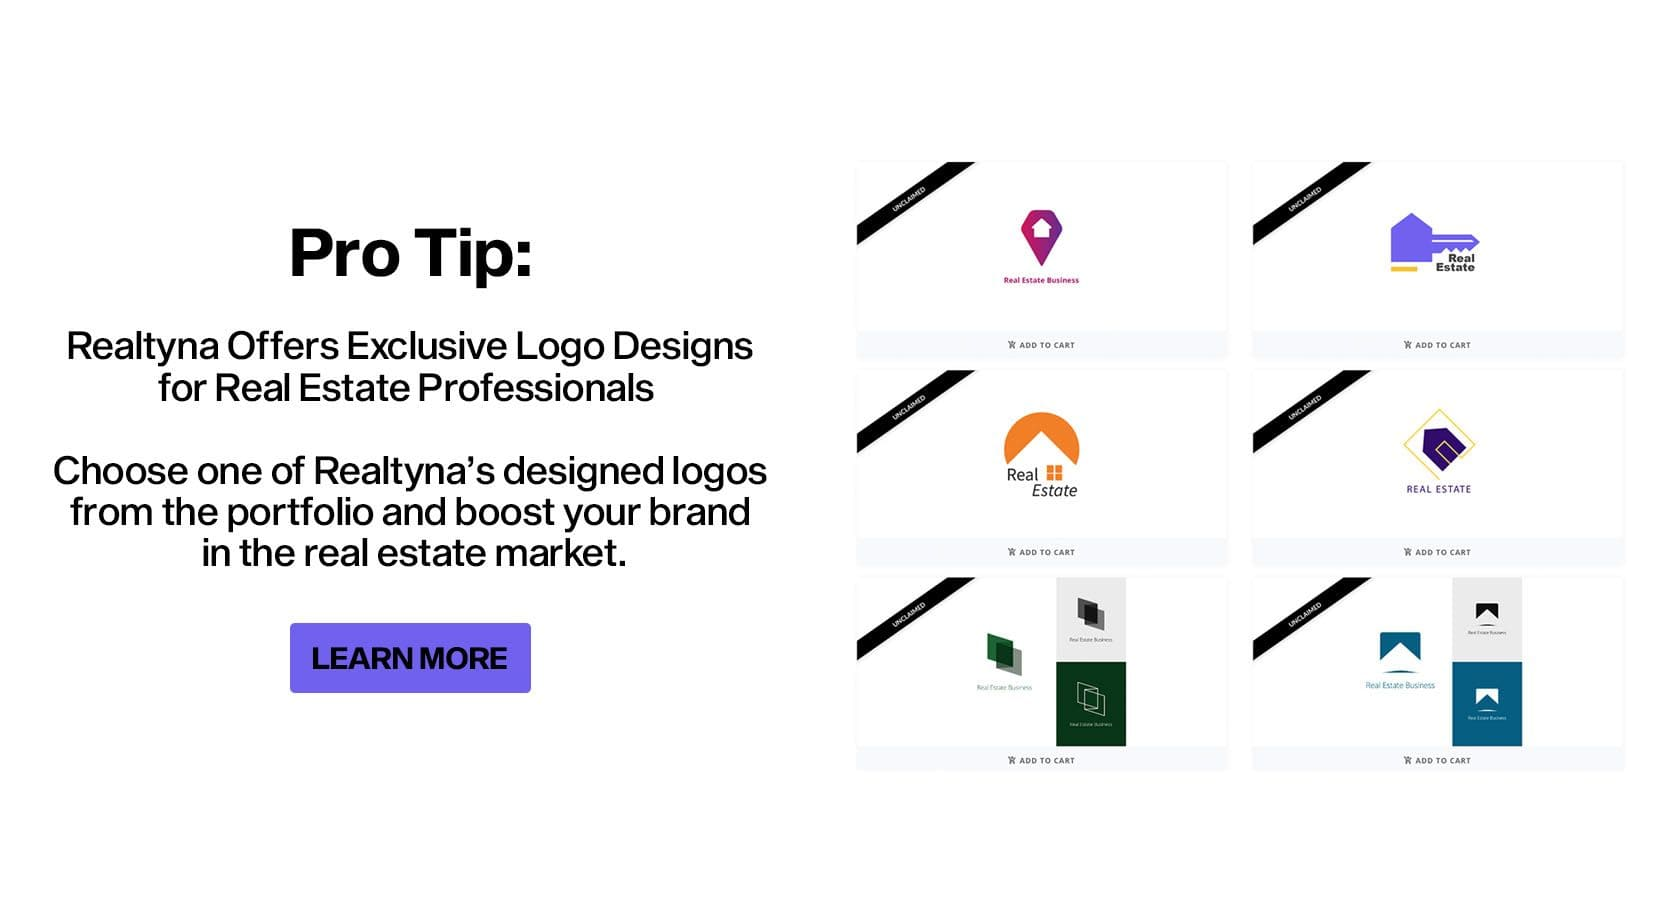 Realtyna's Exclusive Logo Design